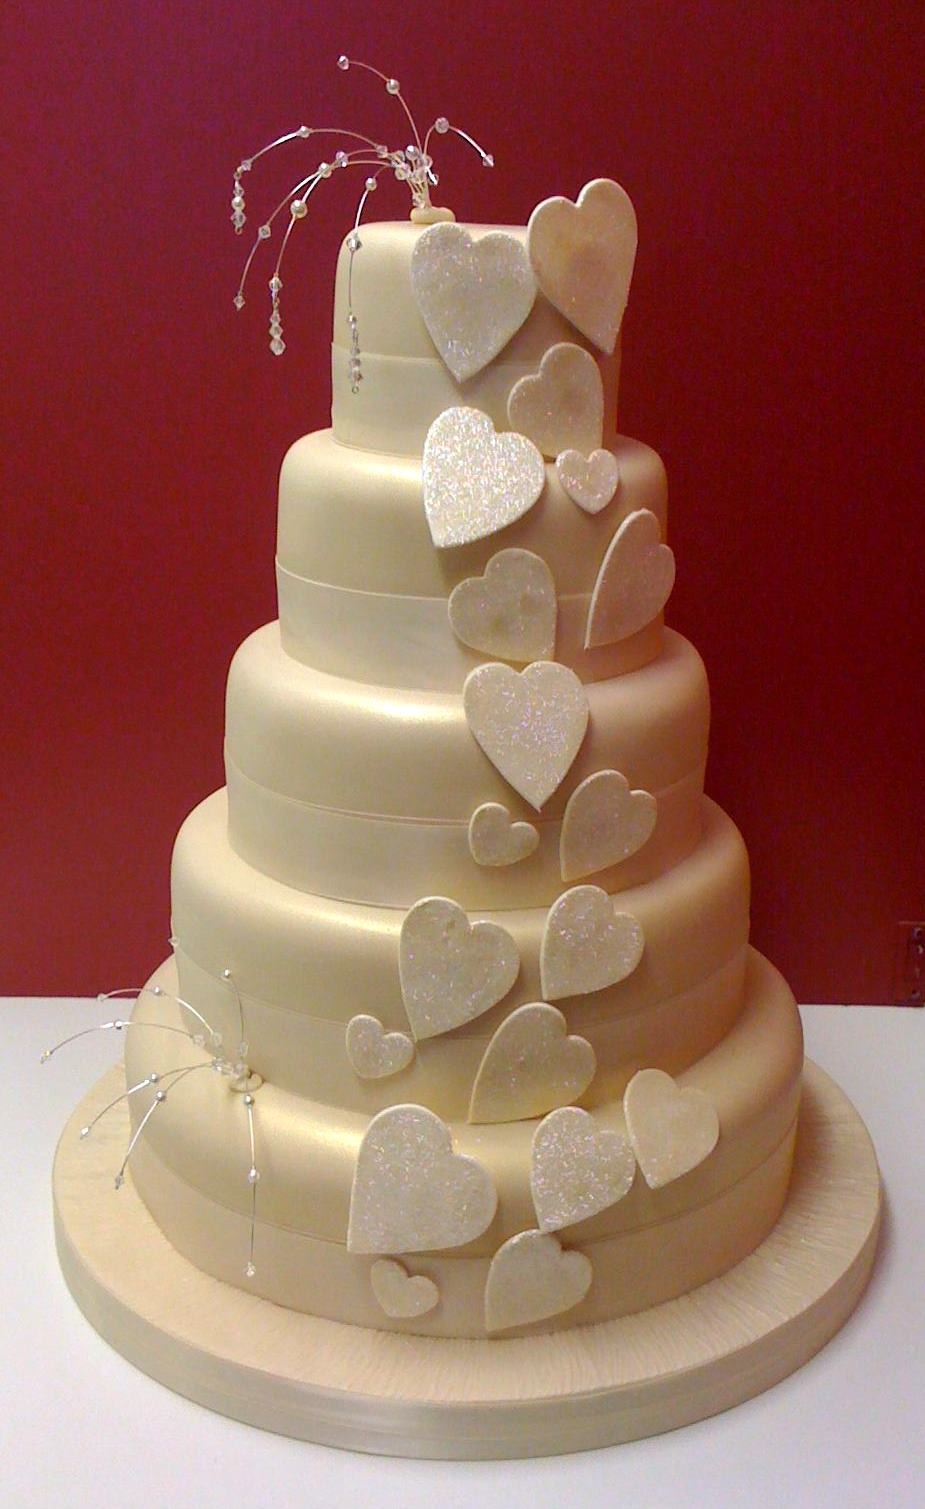 HeartWeddingCake Costco bakery cake order forms us and uk addicted to costco